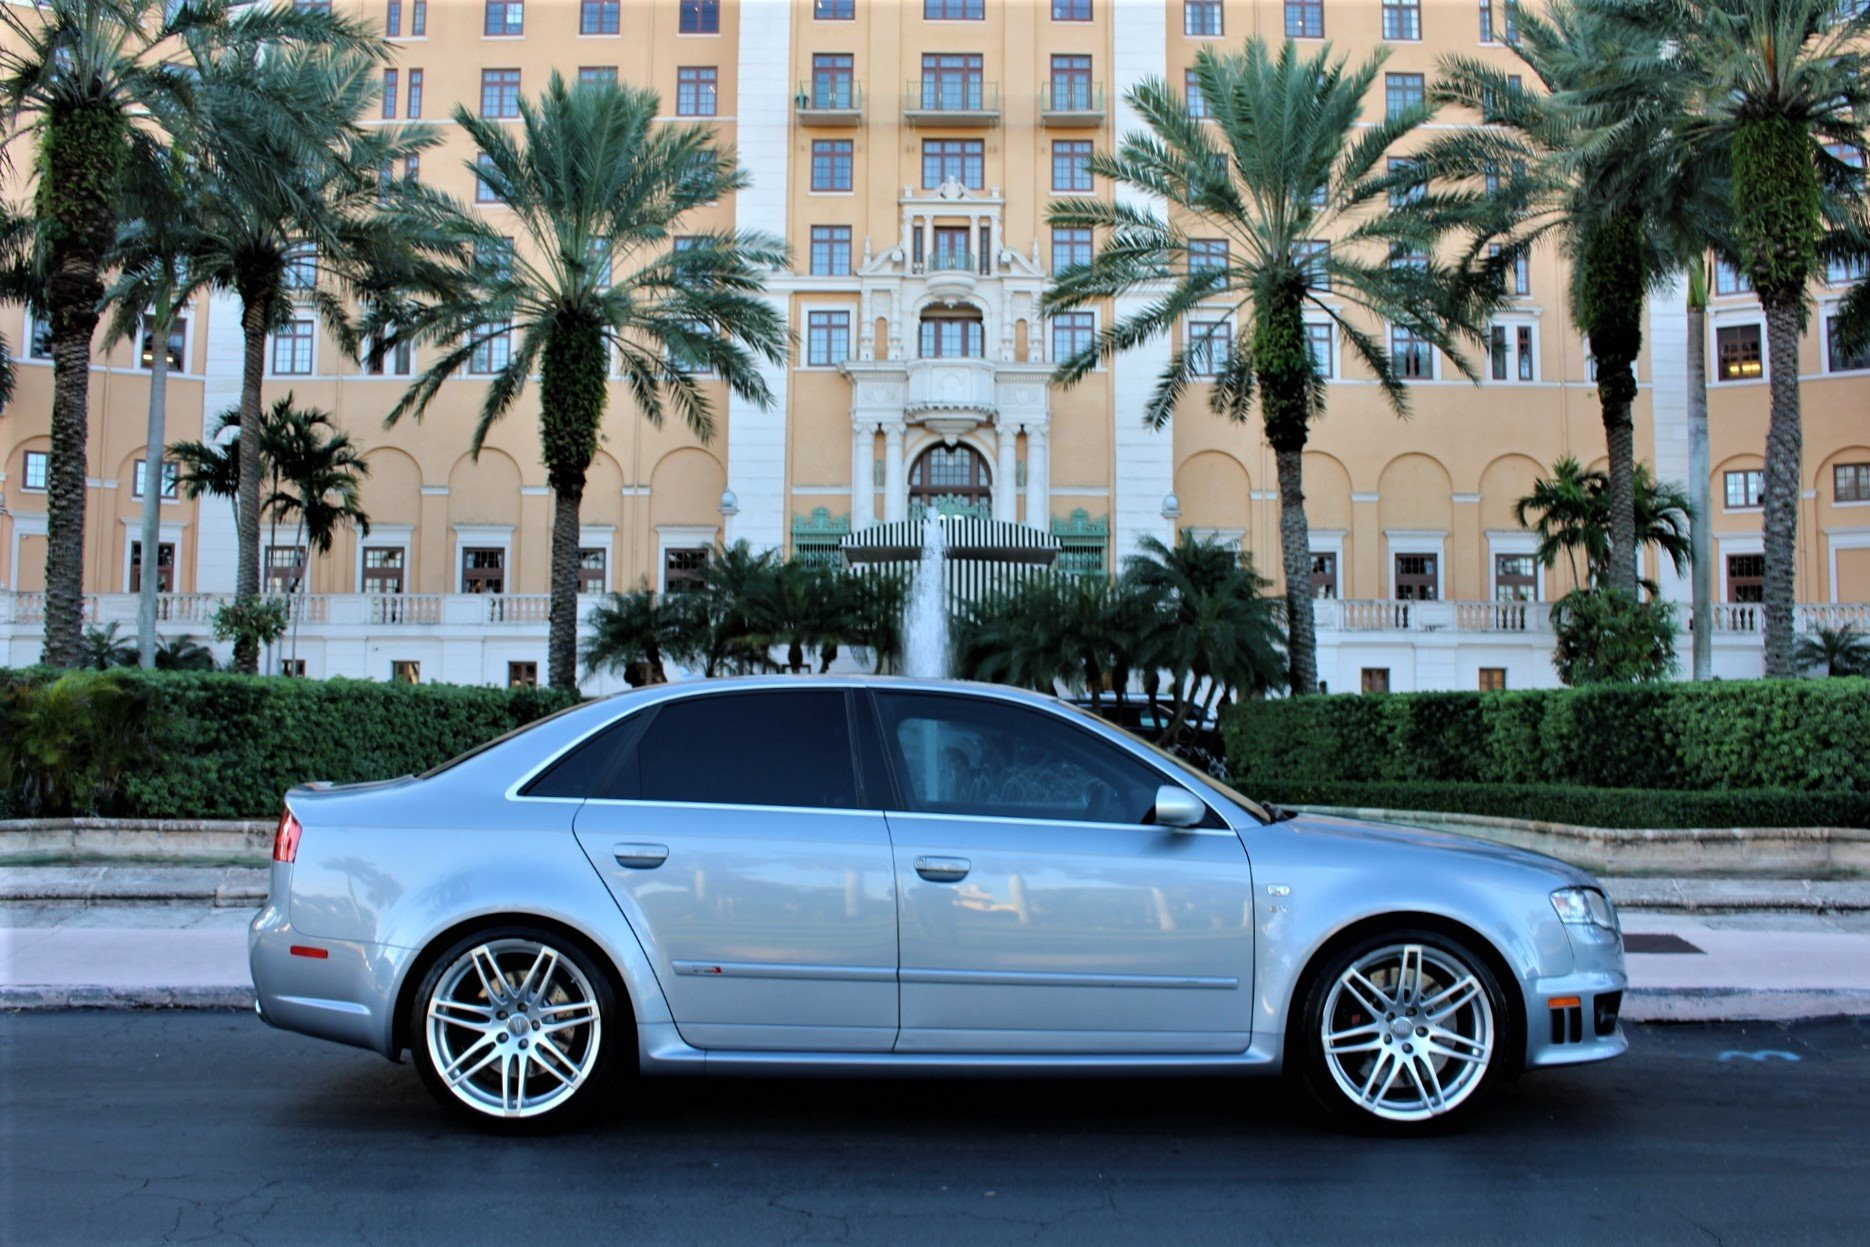 Used 2008 Audi RS 4 quattro for sale Sold at The Gables Sports Cars in Miami FL 33146 1